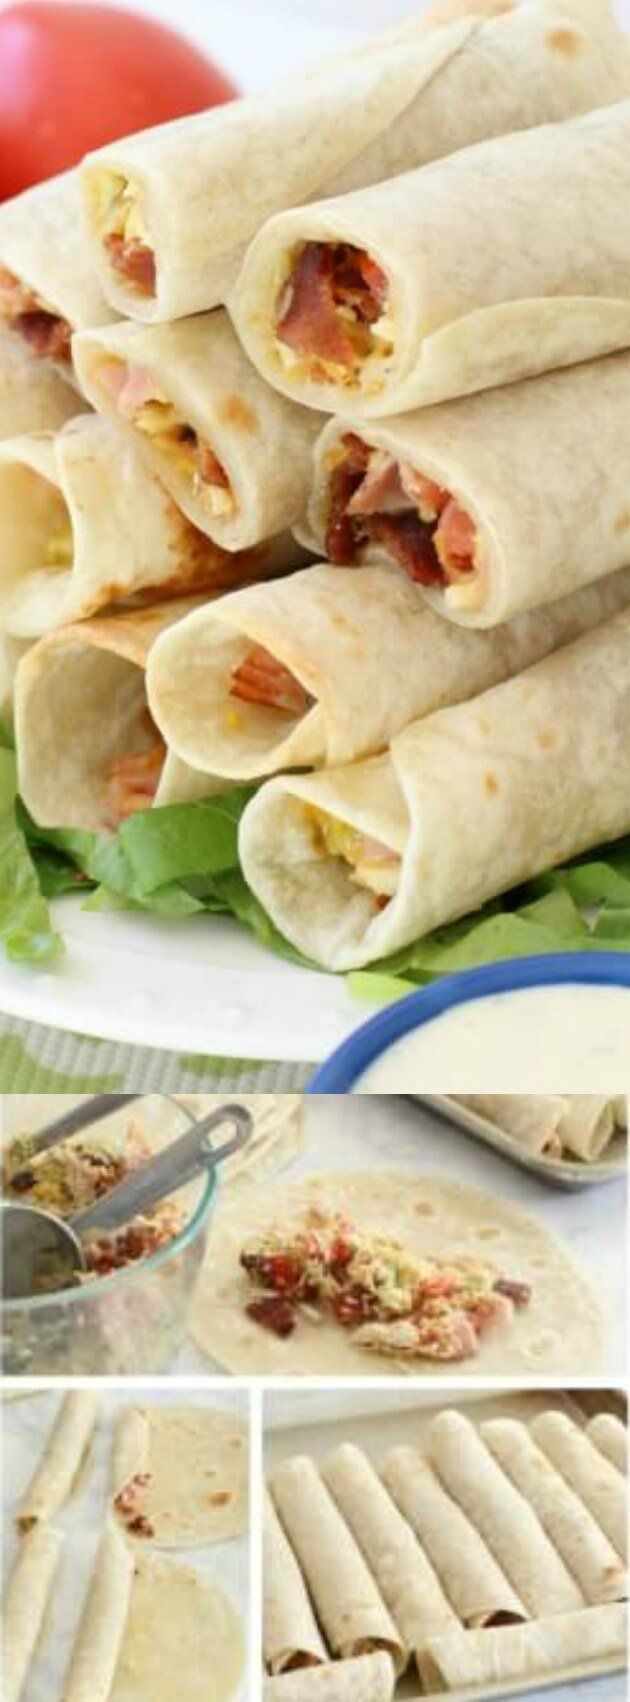 These Chicken Club Roll-Ups from Butter With a Side of Bread are easy to make and stuffed full of  delicious flavor! They are amazing dipped in a slightly spicy Sriracha Ranch, too (or regular ranch if your kids are eating them!).